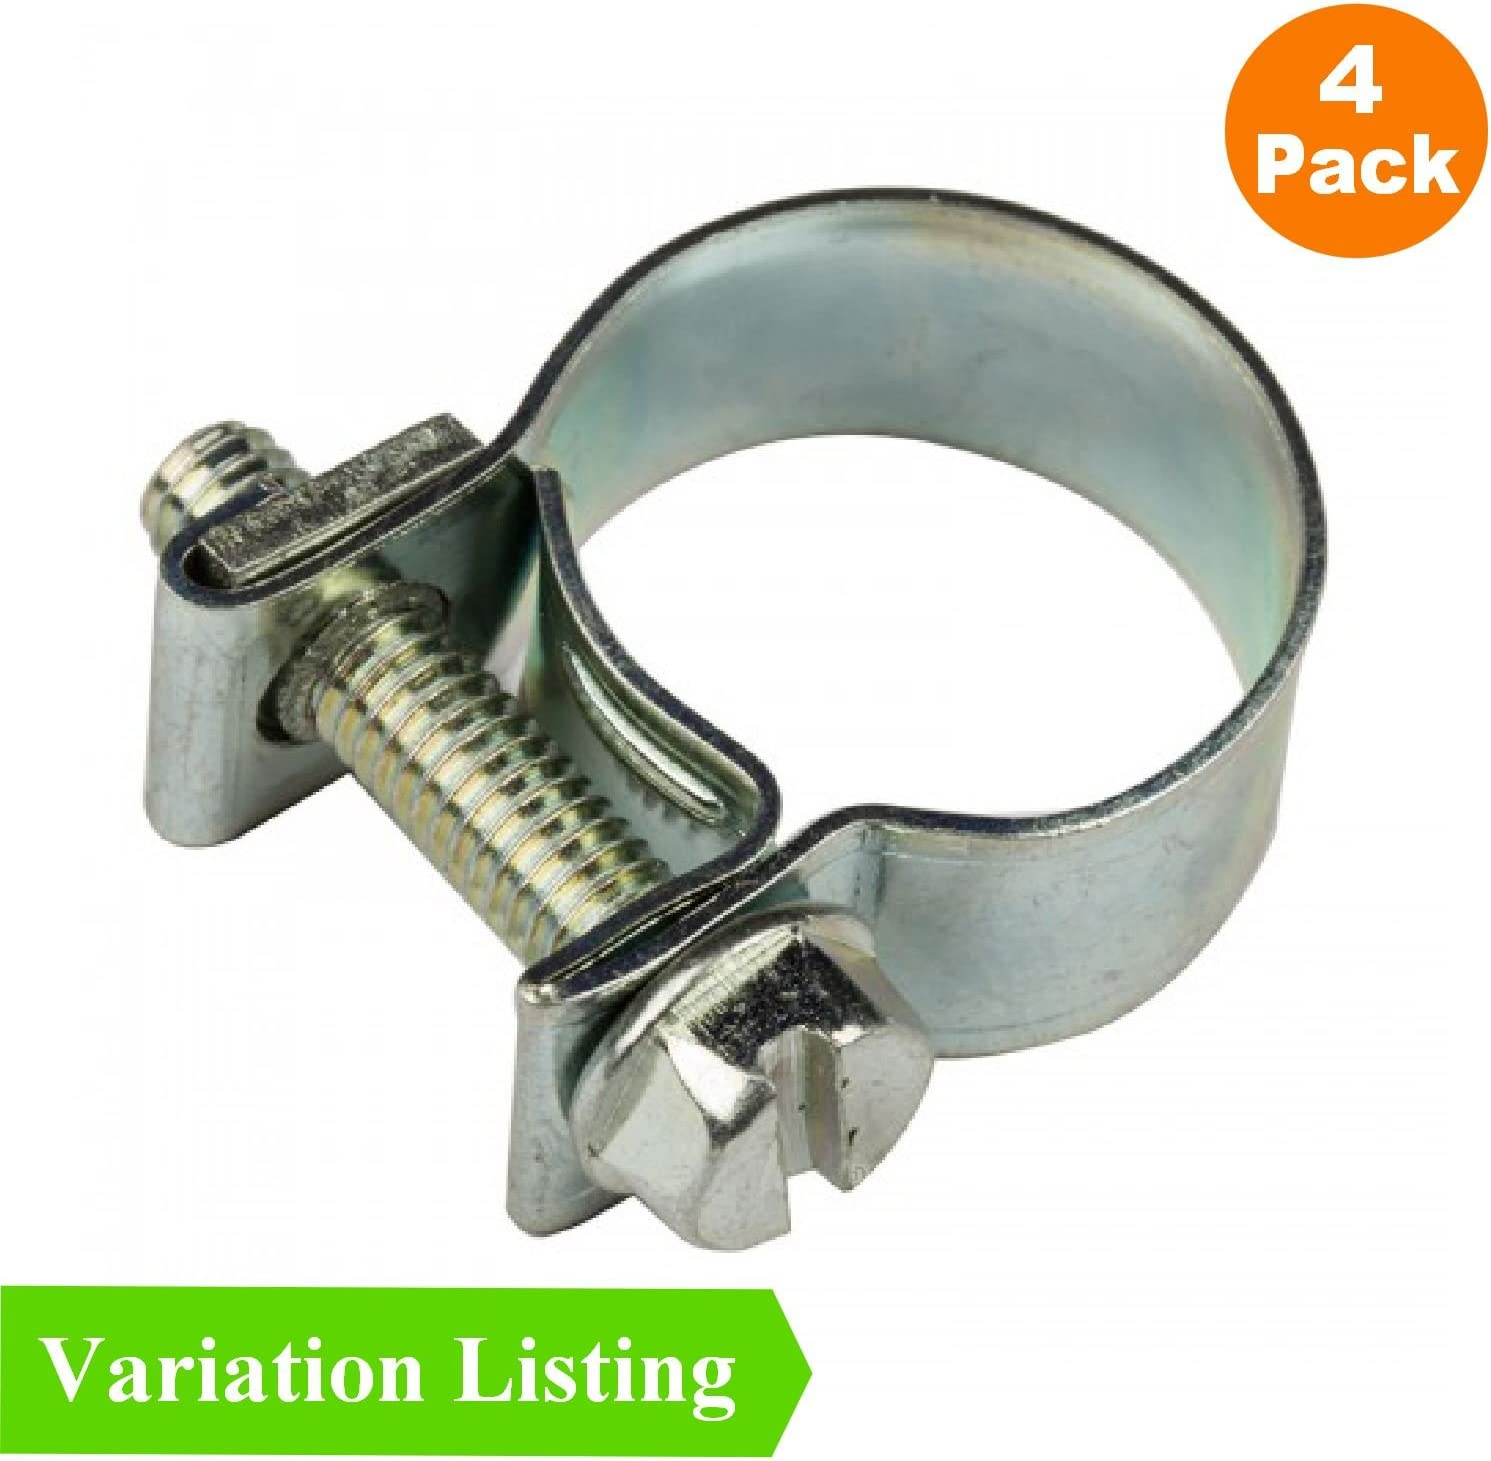 Homesmart Stage-A77-Var 4 x Mini Fuel Line Jubilee Hose Clips Clamps Diesel Petrol Pipe Coolant Radiator 14-16mm